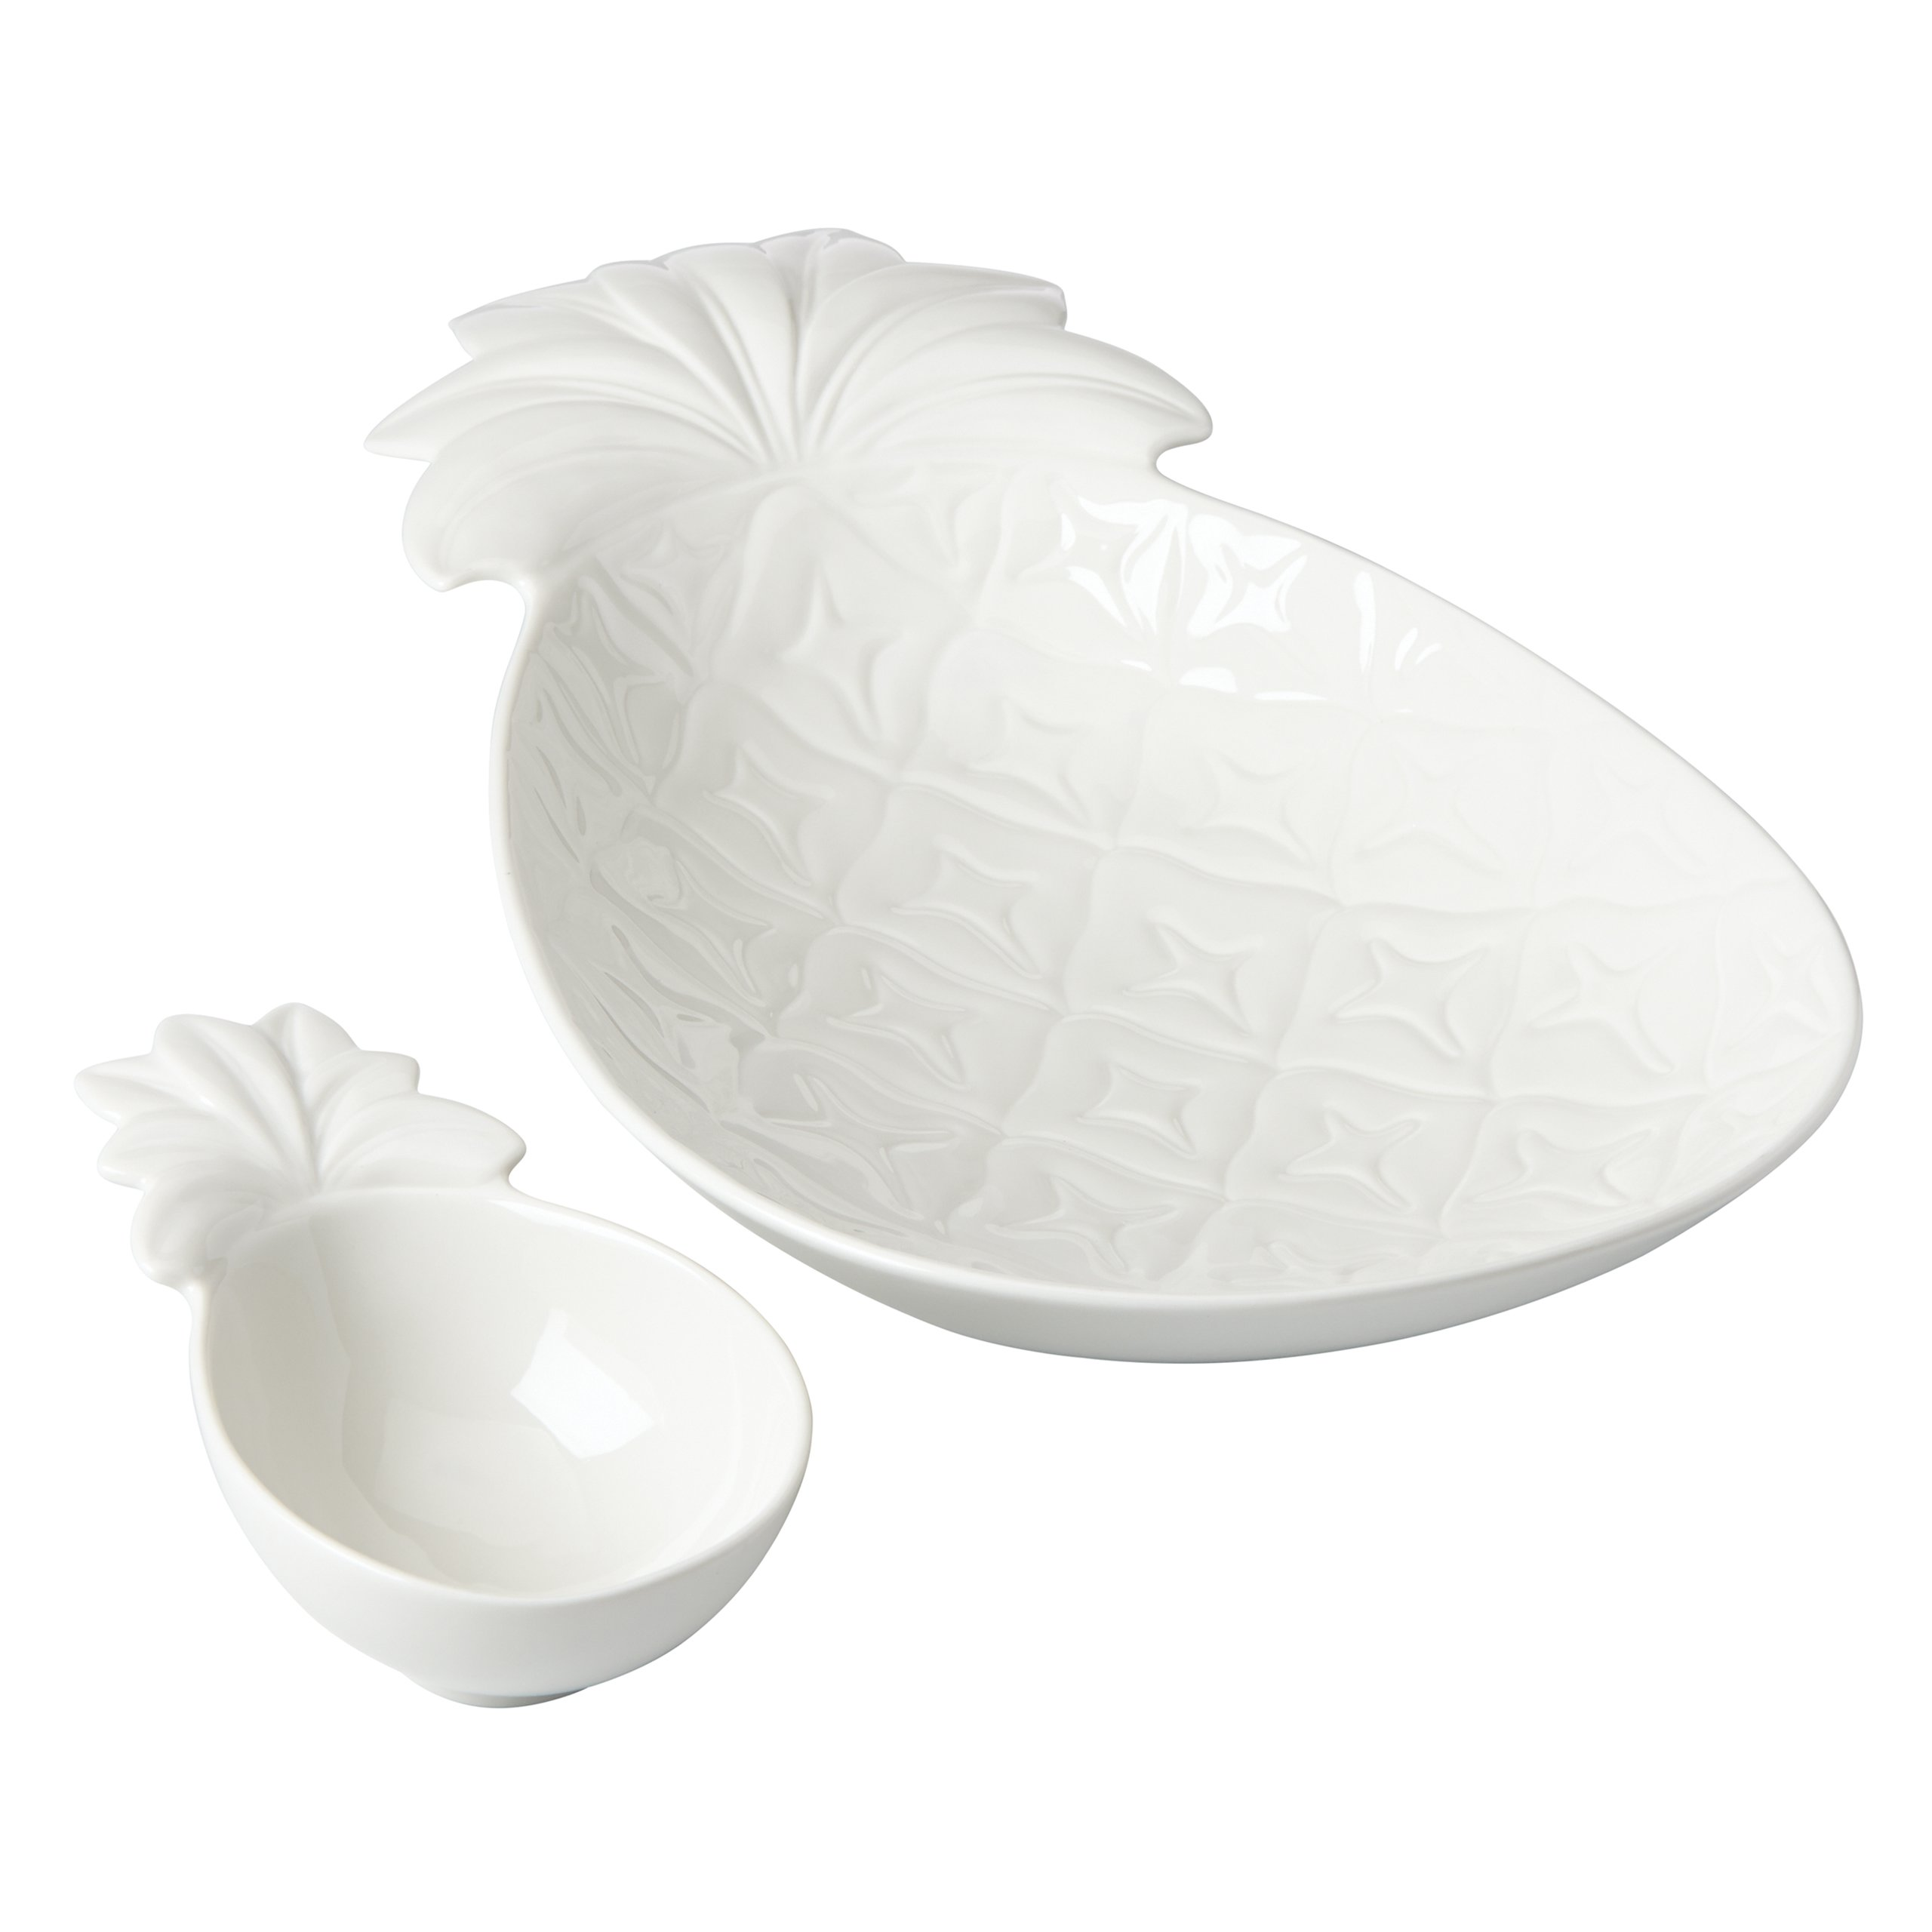 Lenox British Colonial Carved Pineapple Chip and Dip Serving Set, White